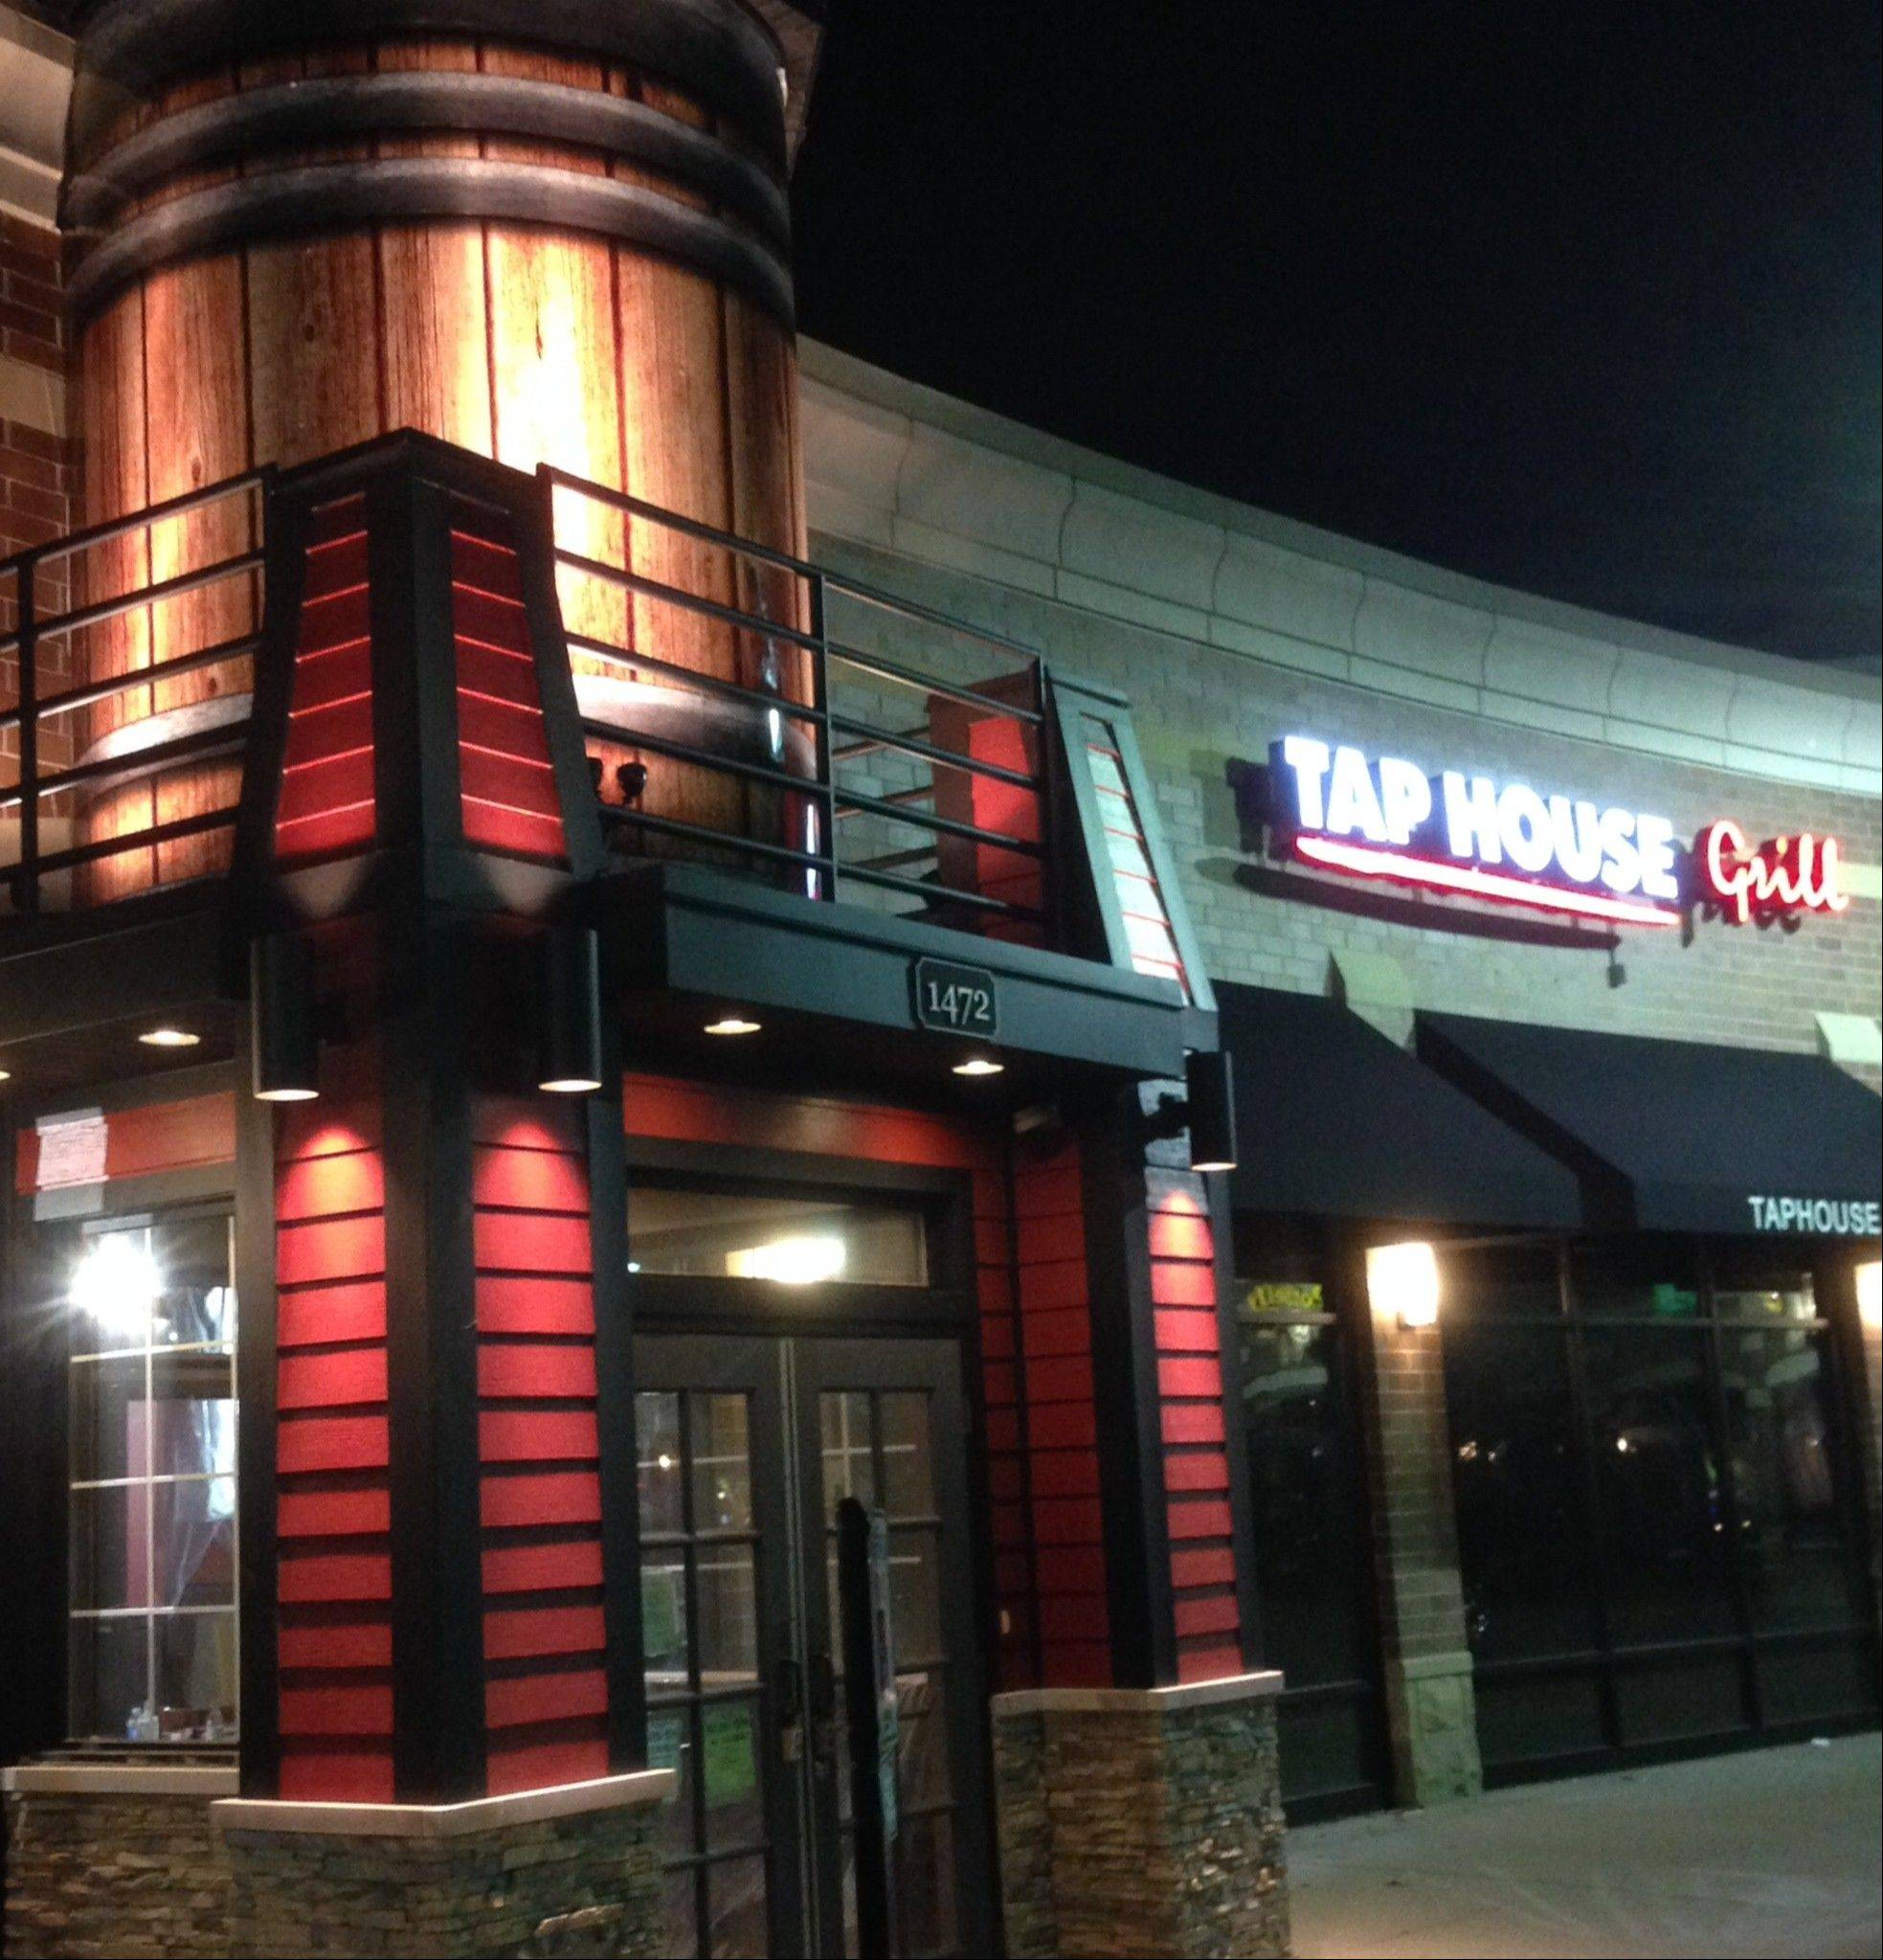 Amazing The Tap House Grill Is Now Open At Metropolitan Square In Des Plaines.